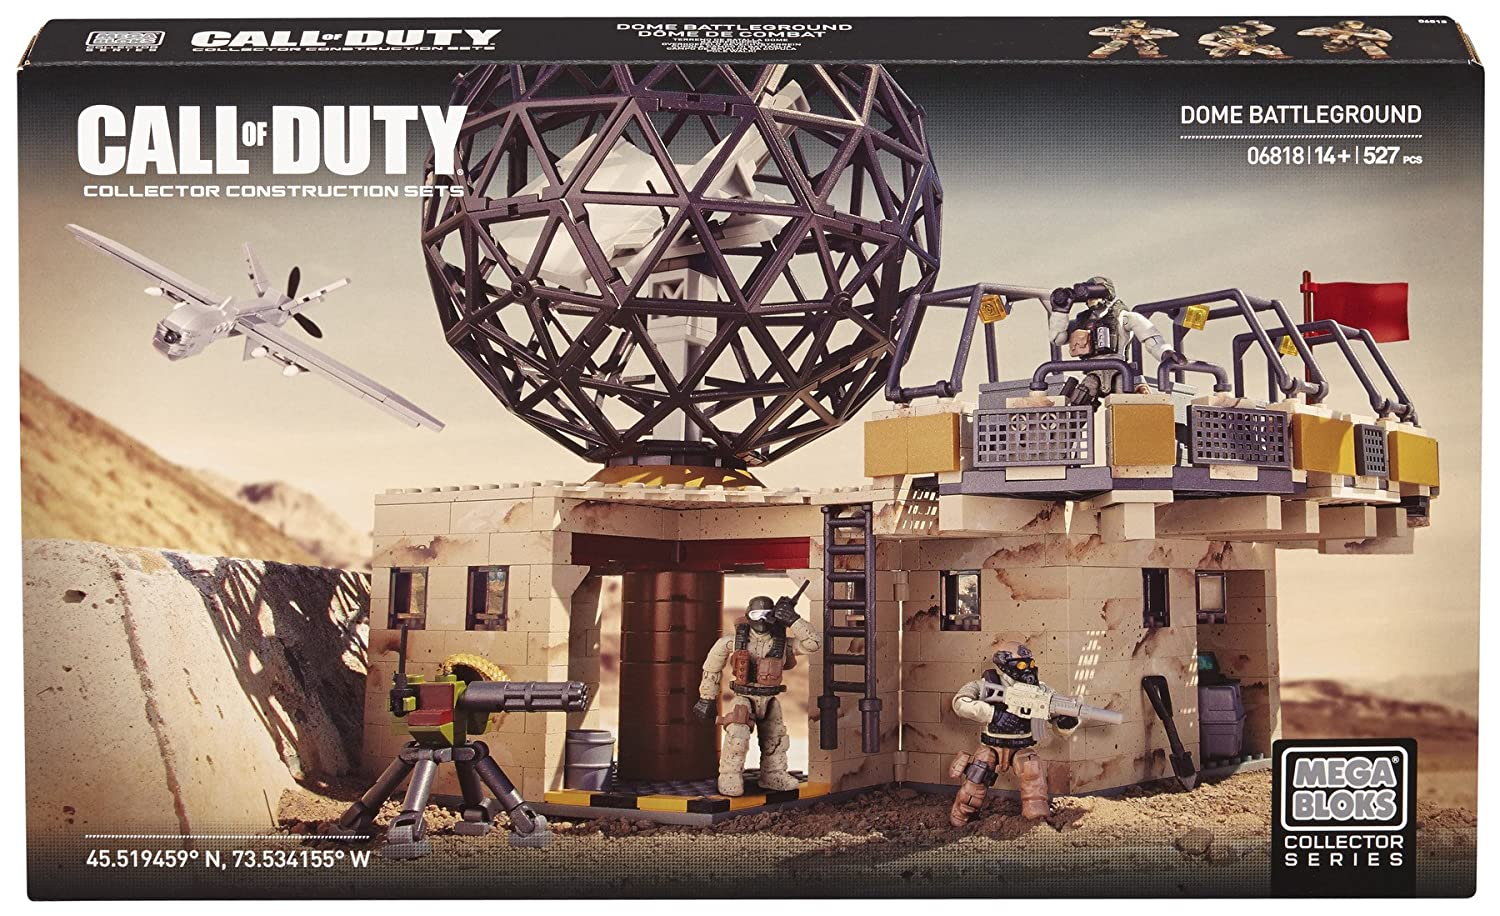 Mega Bloks Call of Duty Dome Battleground battleground